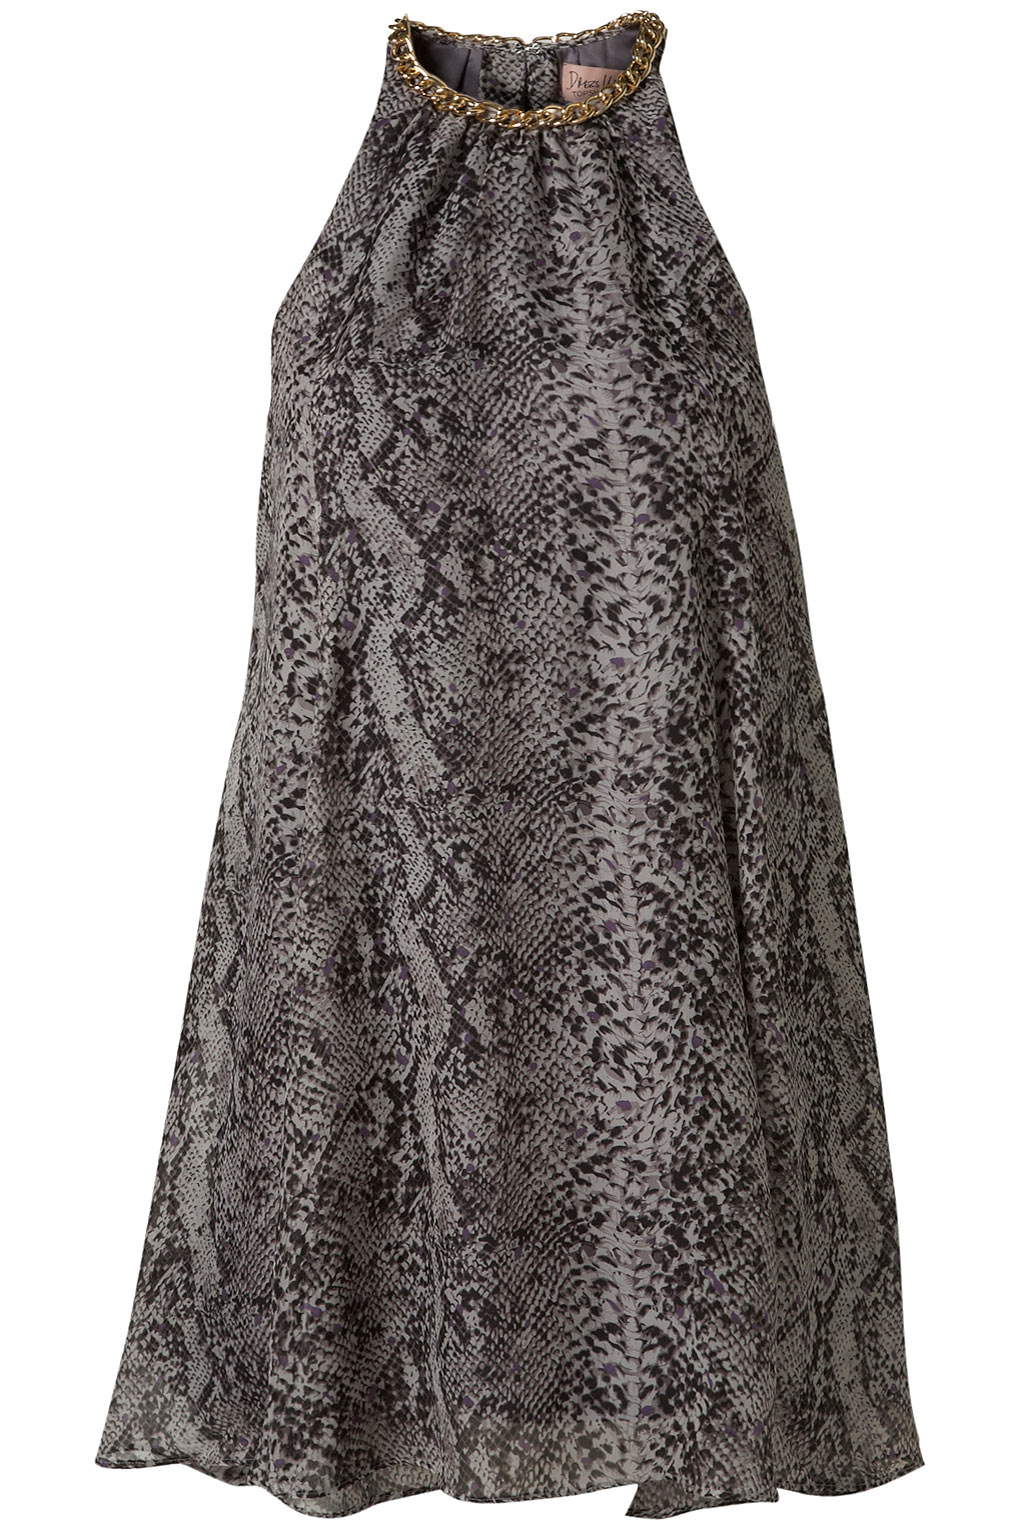 Deal of the day: Topshop grey snake print dress